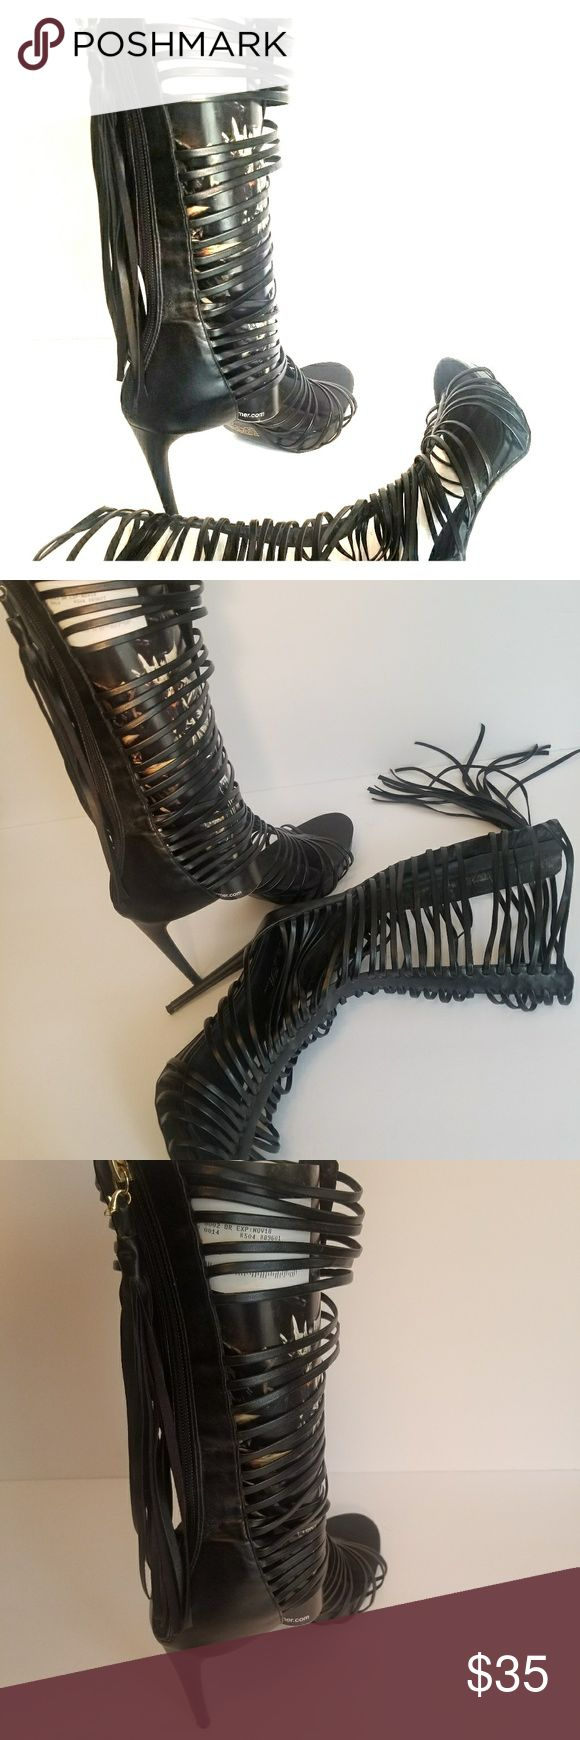 Women shoes Black zip/Strapy heels with tassels breckell's Shoes